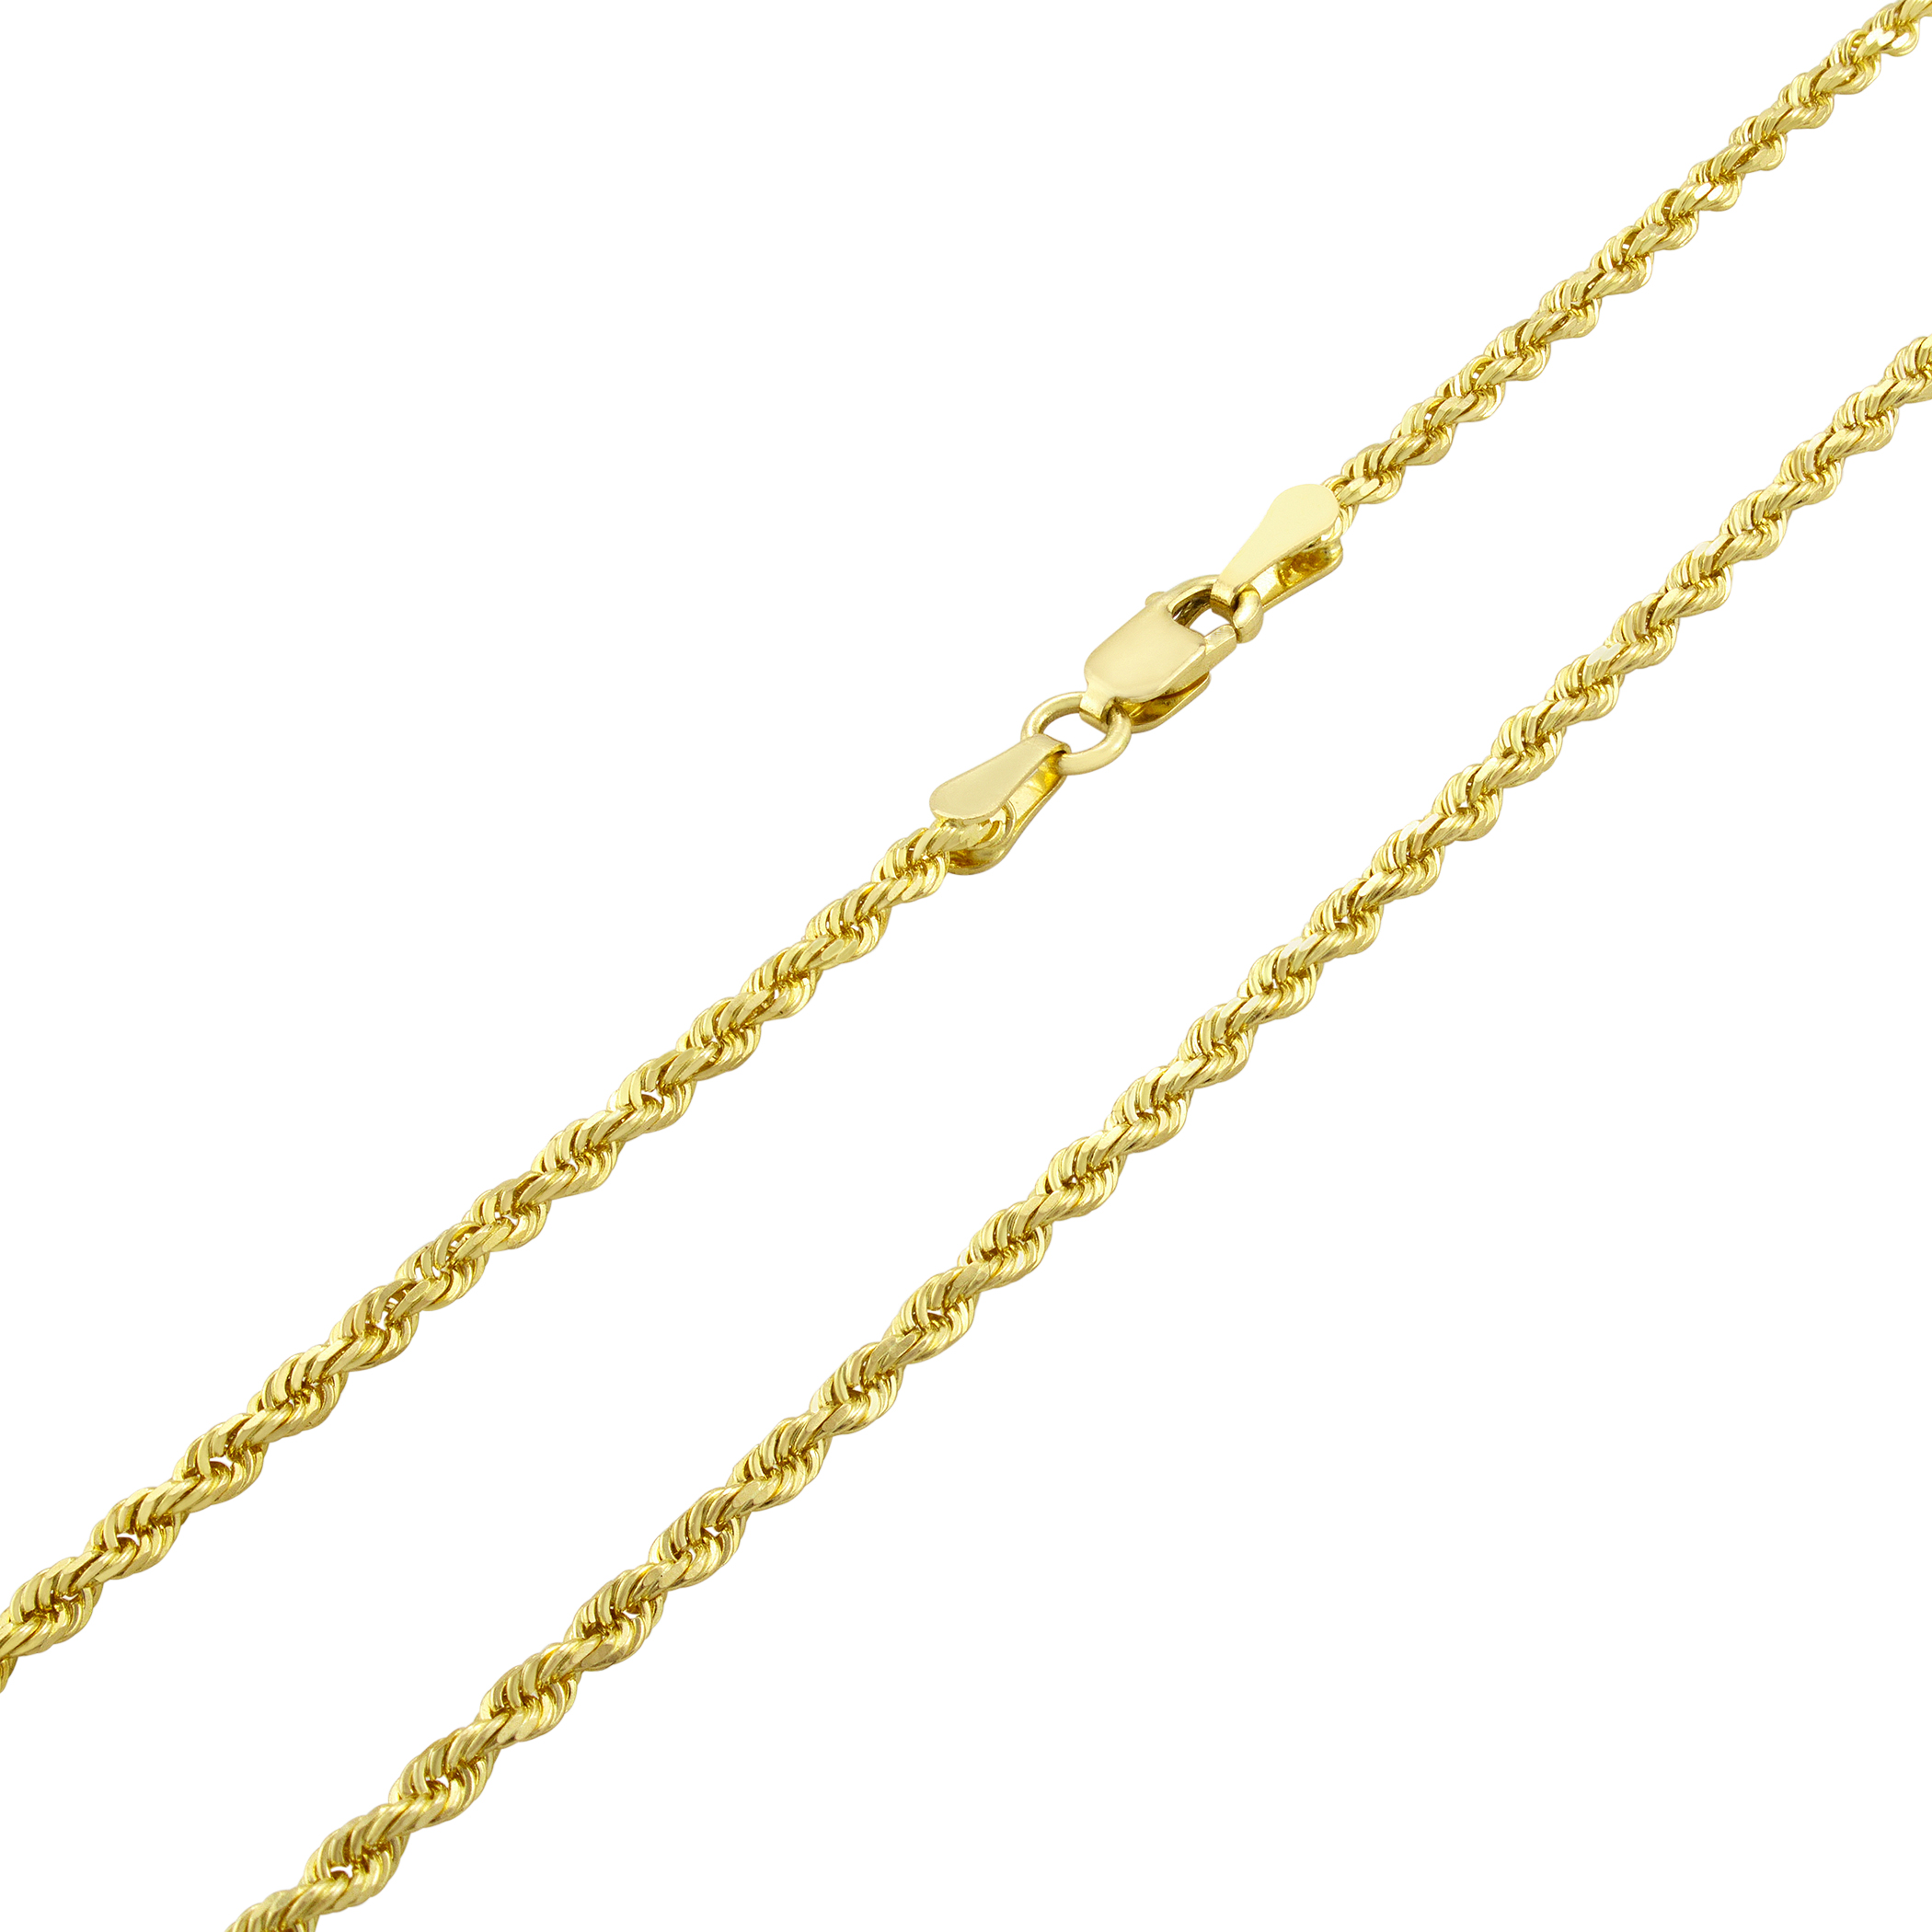 Solid-14K-Yellow-Gold-2-5mm-Mens-Women-Diamond-Cut-Rope-Chain-Necklace-16-034-30-034 thumbnail 13